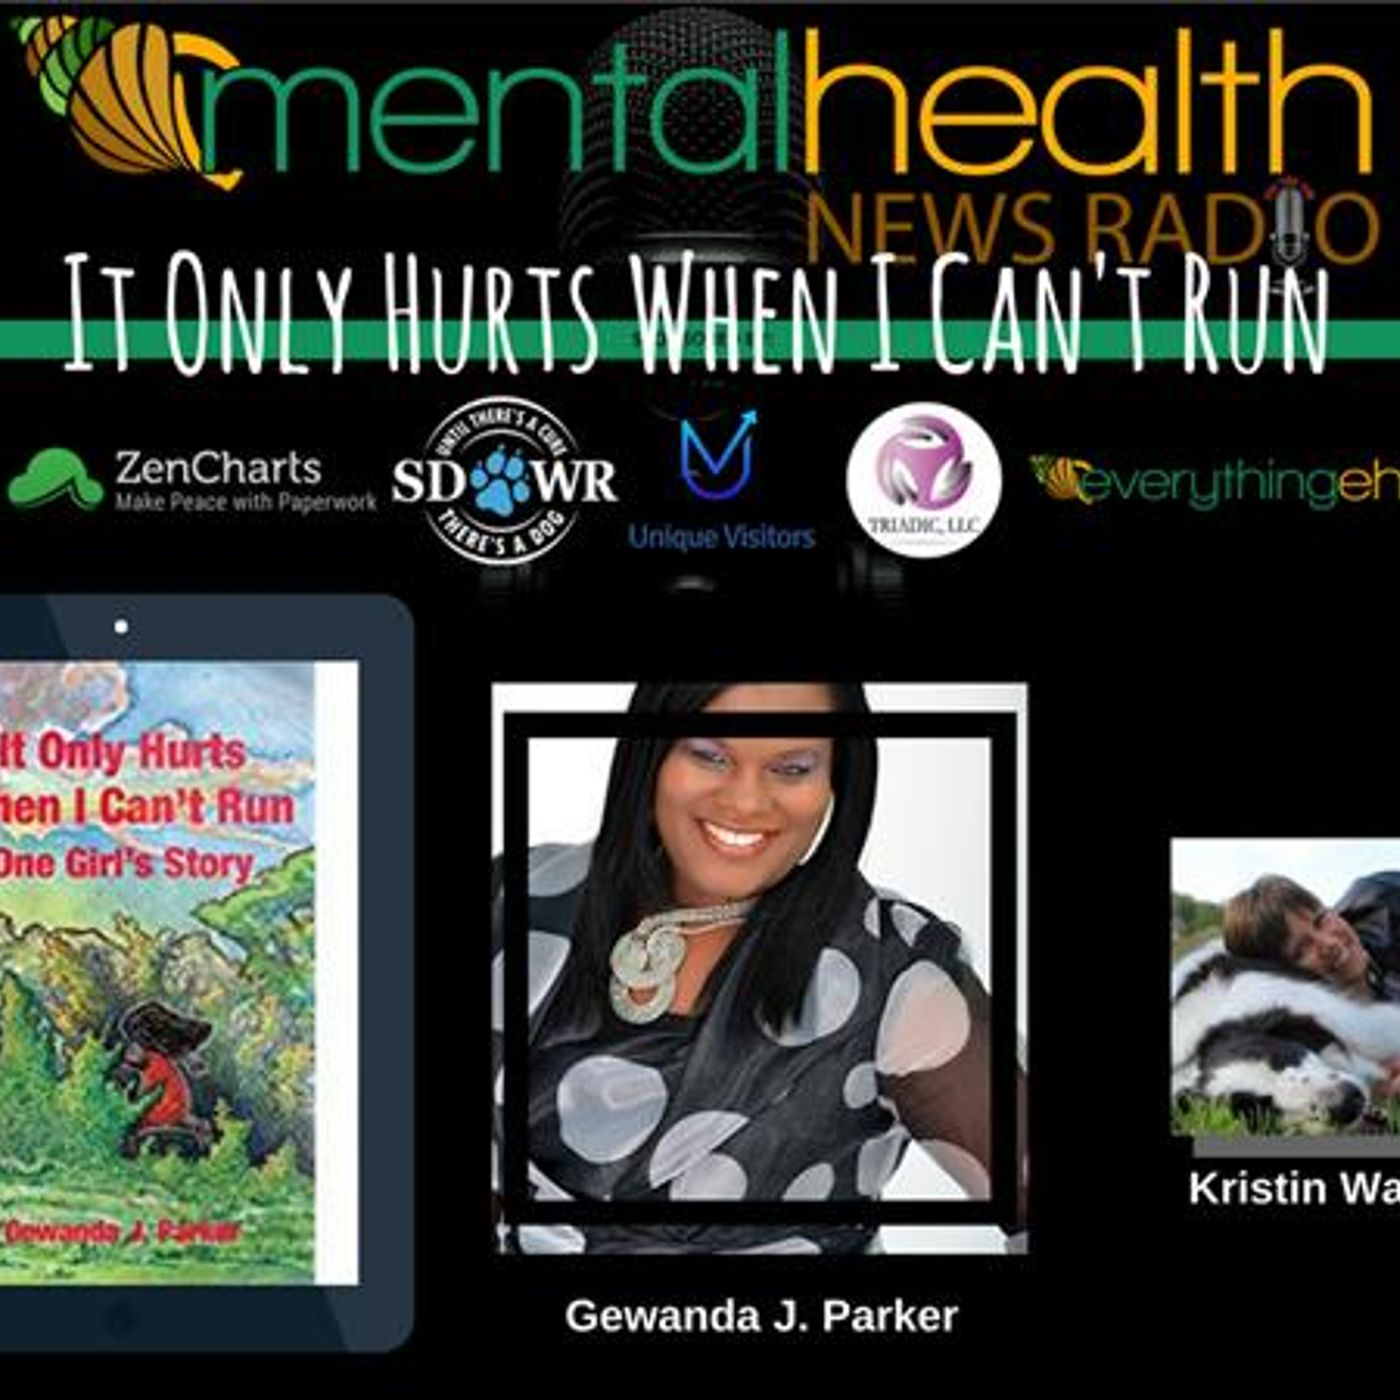 Mental Health News Radio - It Only Hurts When I Can't Run: One Girl's Story with Gewanda J. Parker